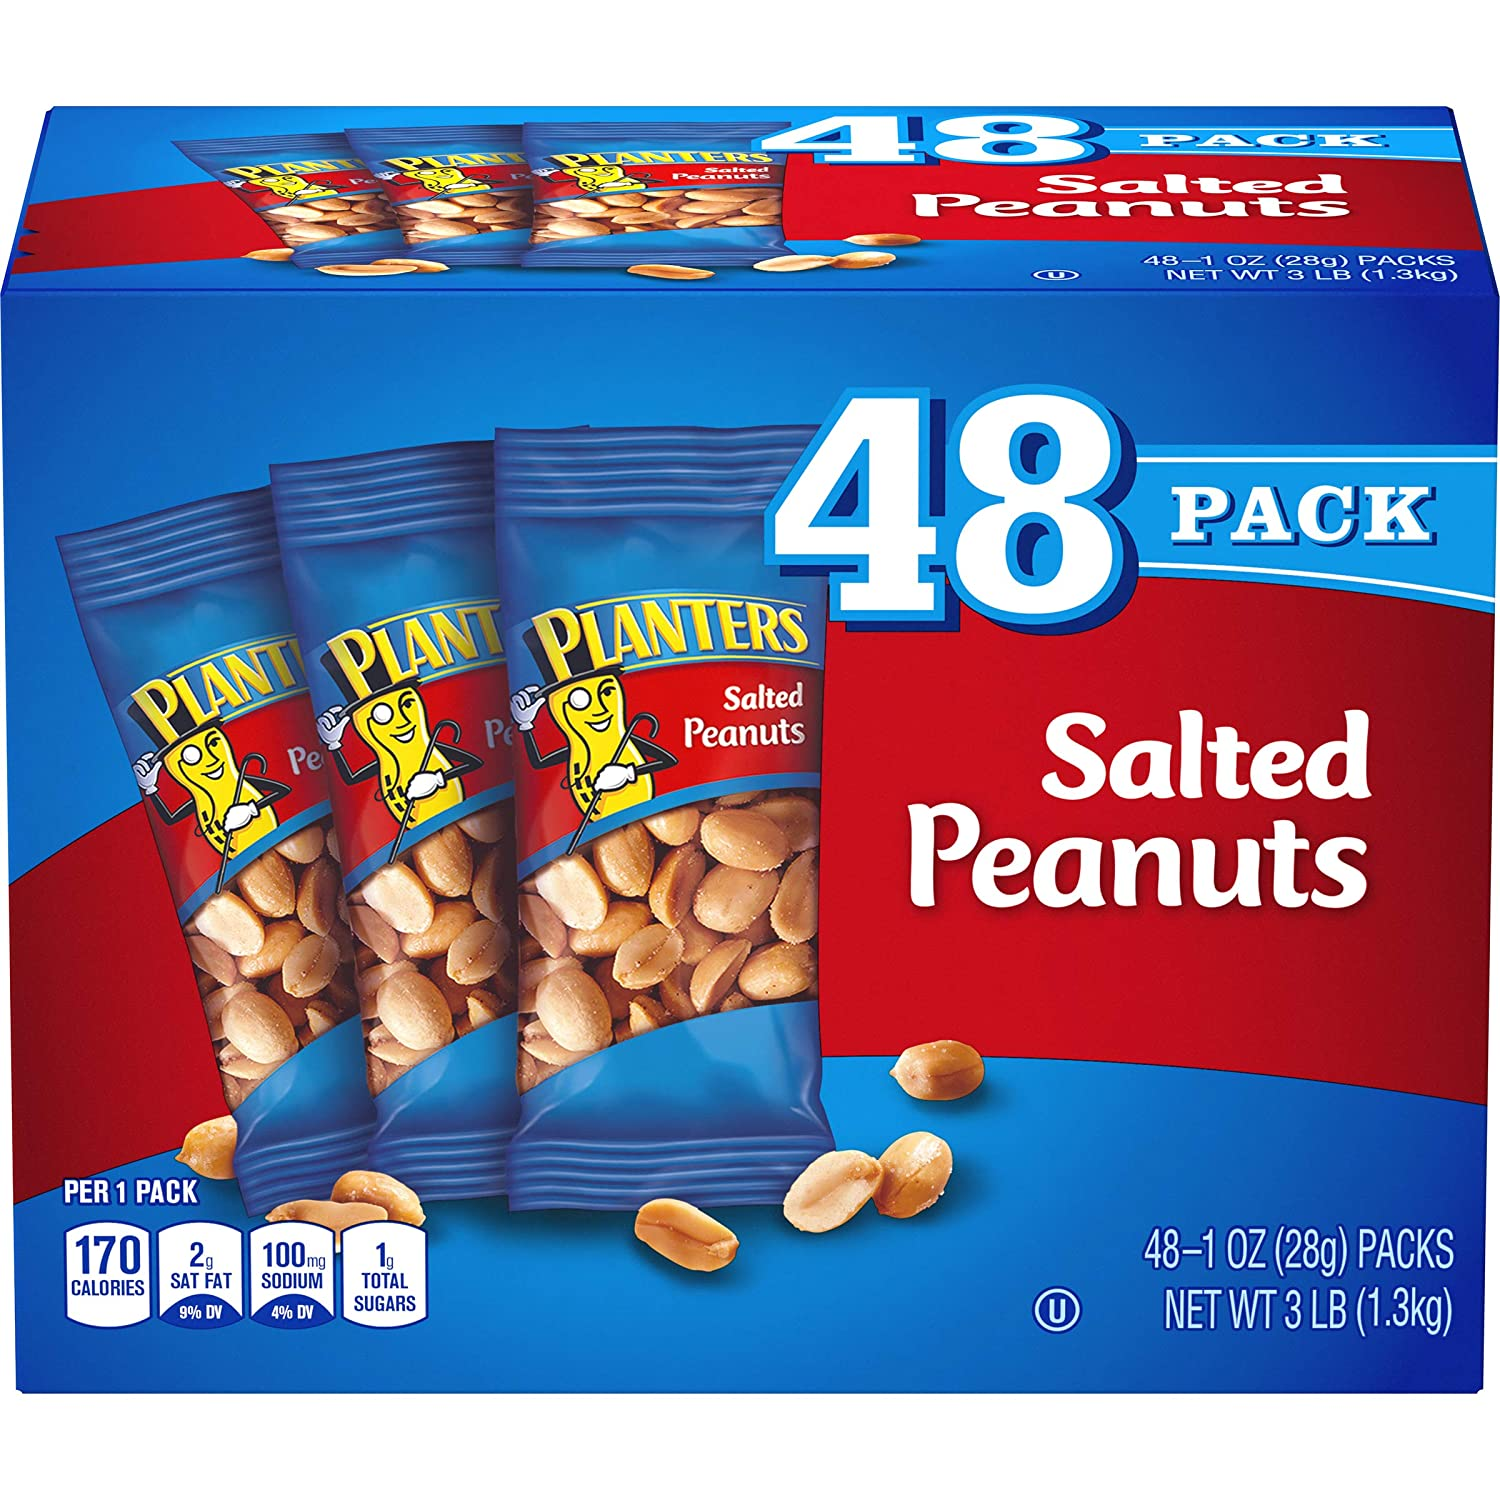 Planters Peanuts Planters Salted 1 Oz-48 Count